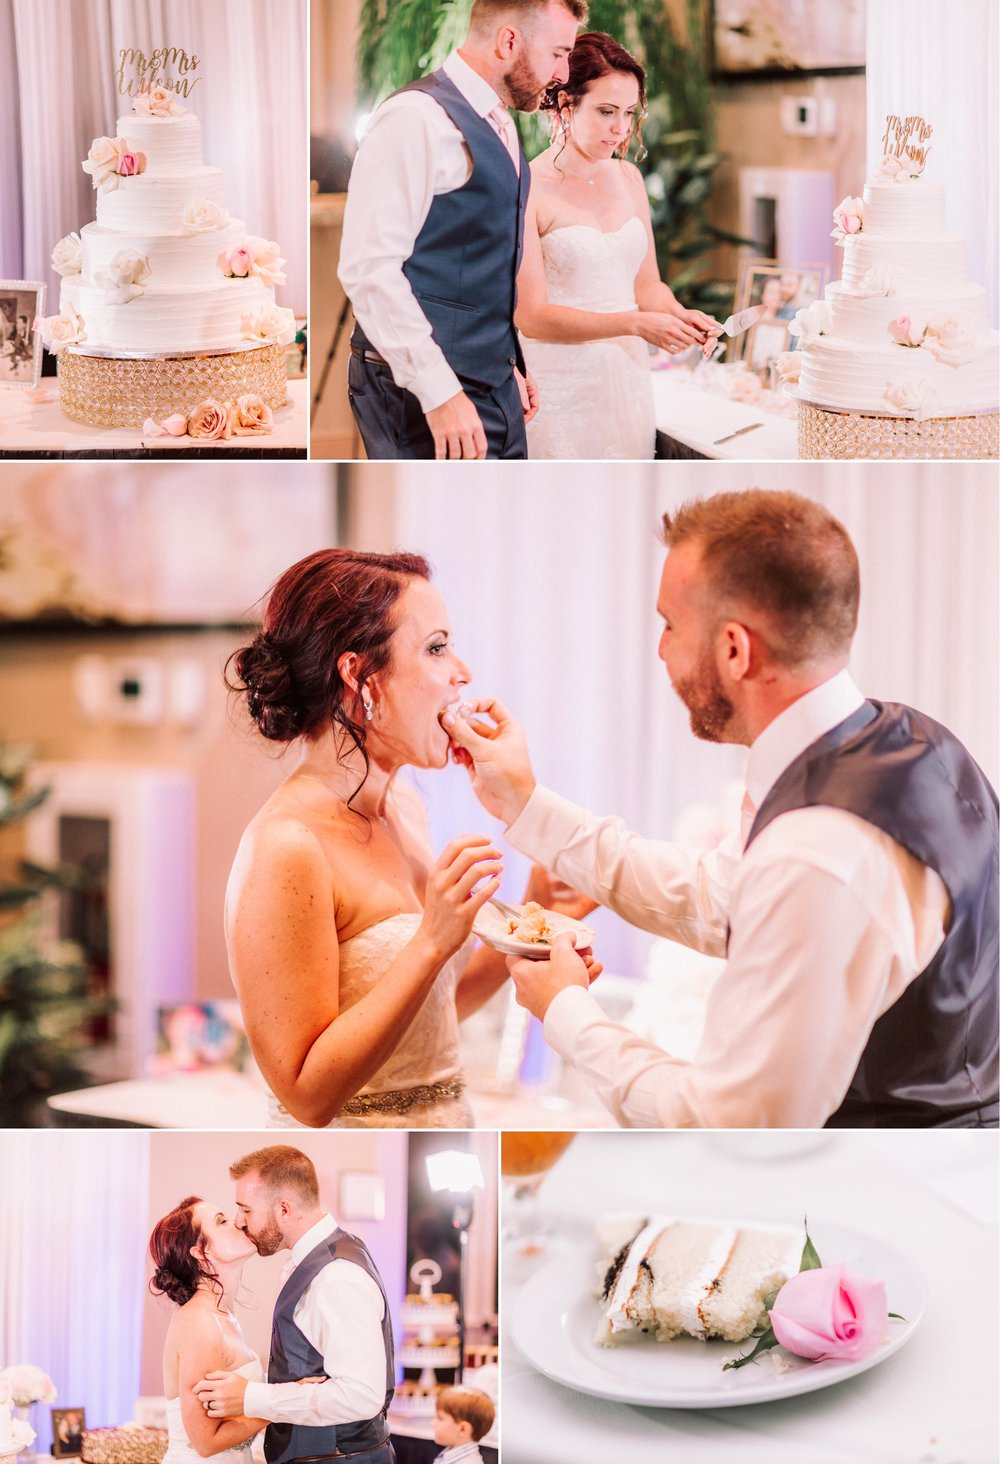 Romantic Pink Spring Wedding - Katie + Joe by Orlando Wedding Photographer Shaina DeCiryan 103.jpg